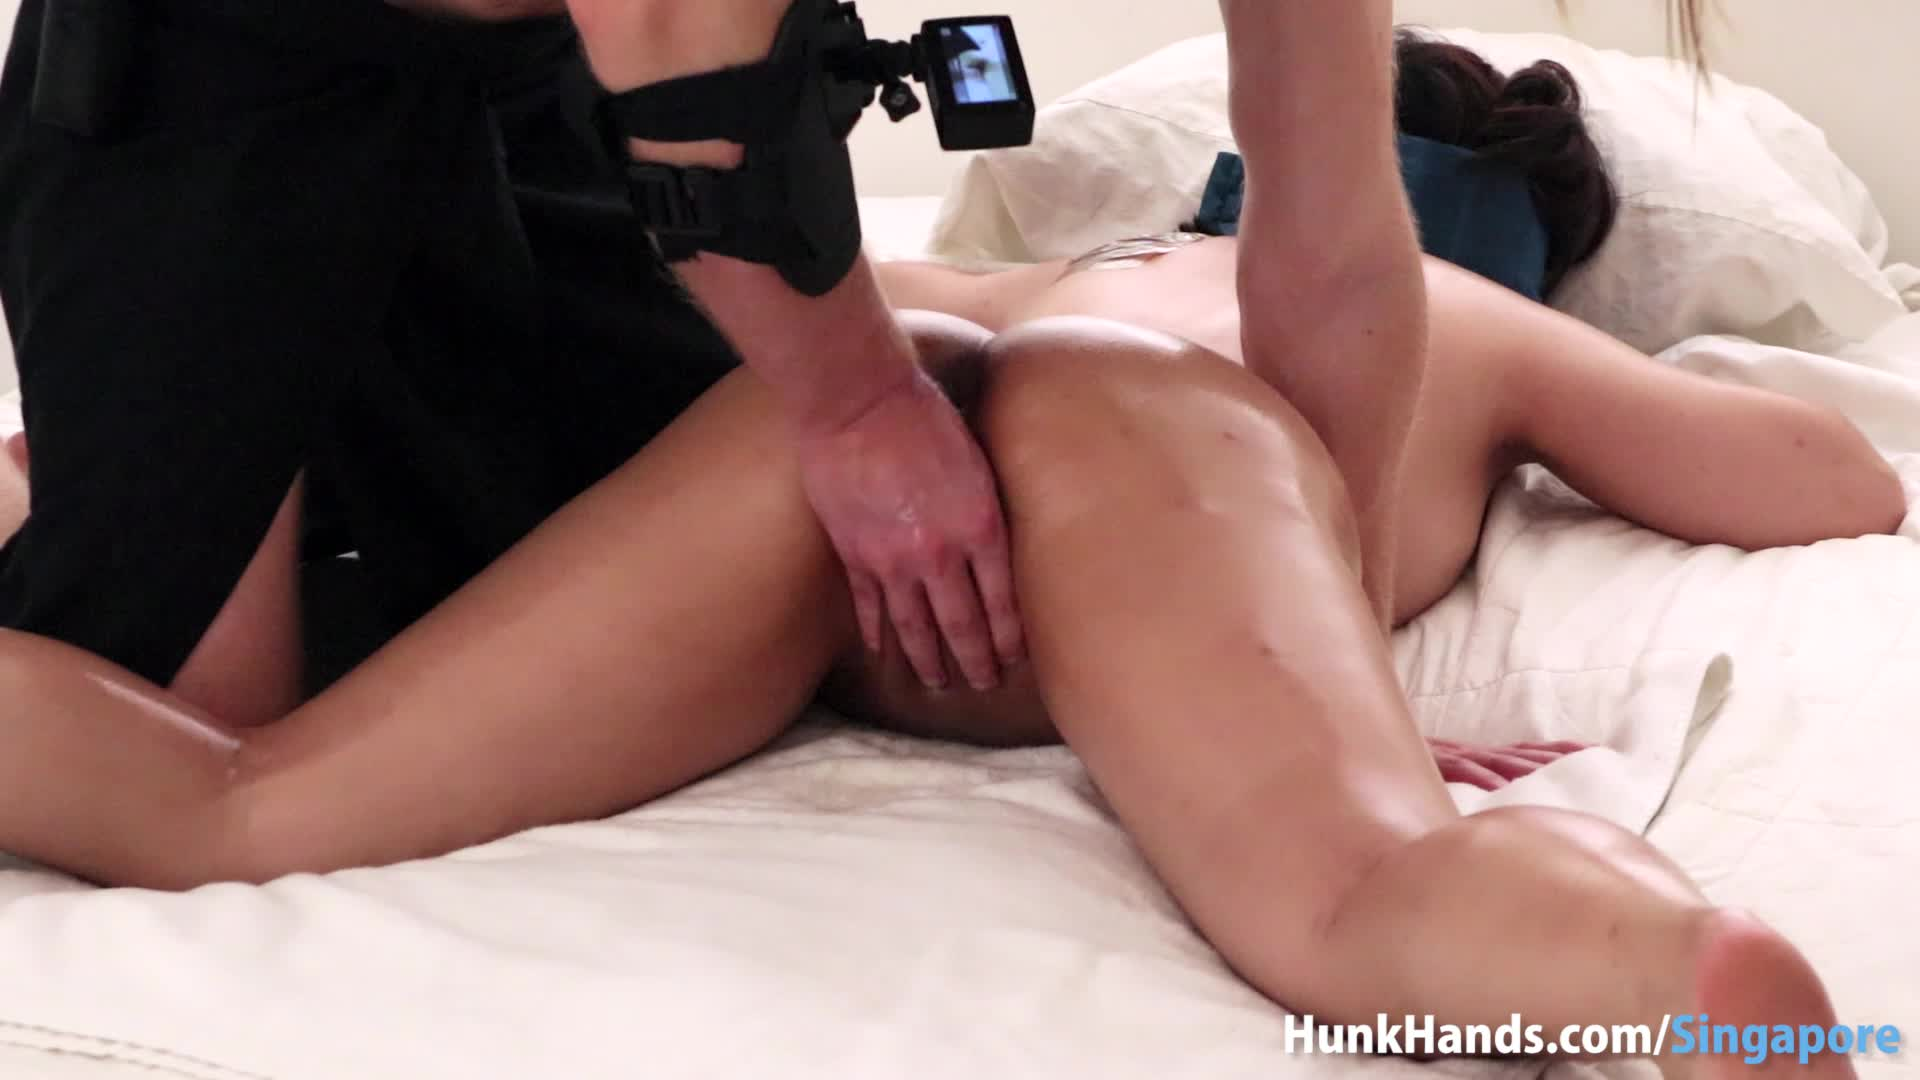 Guy First Time Sucking Cock